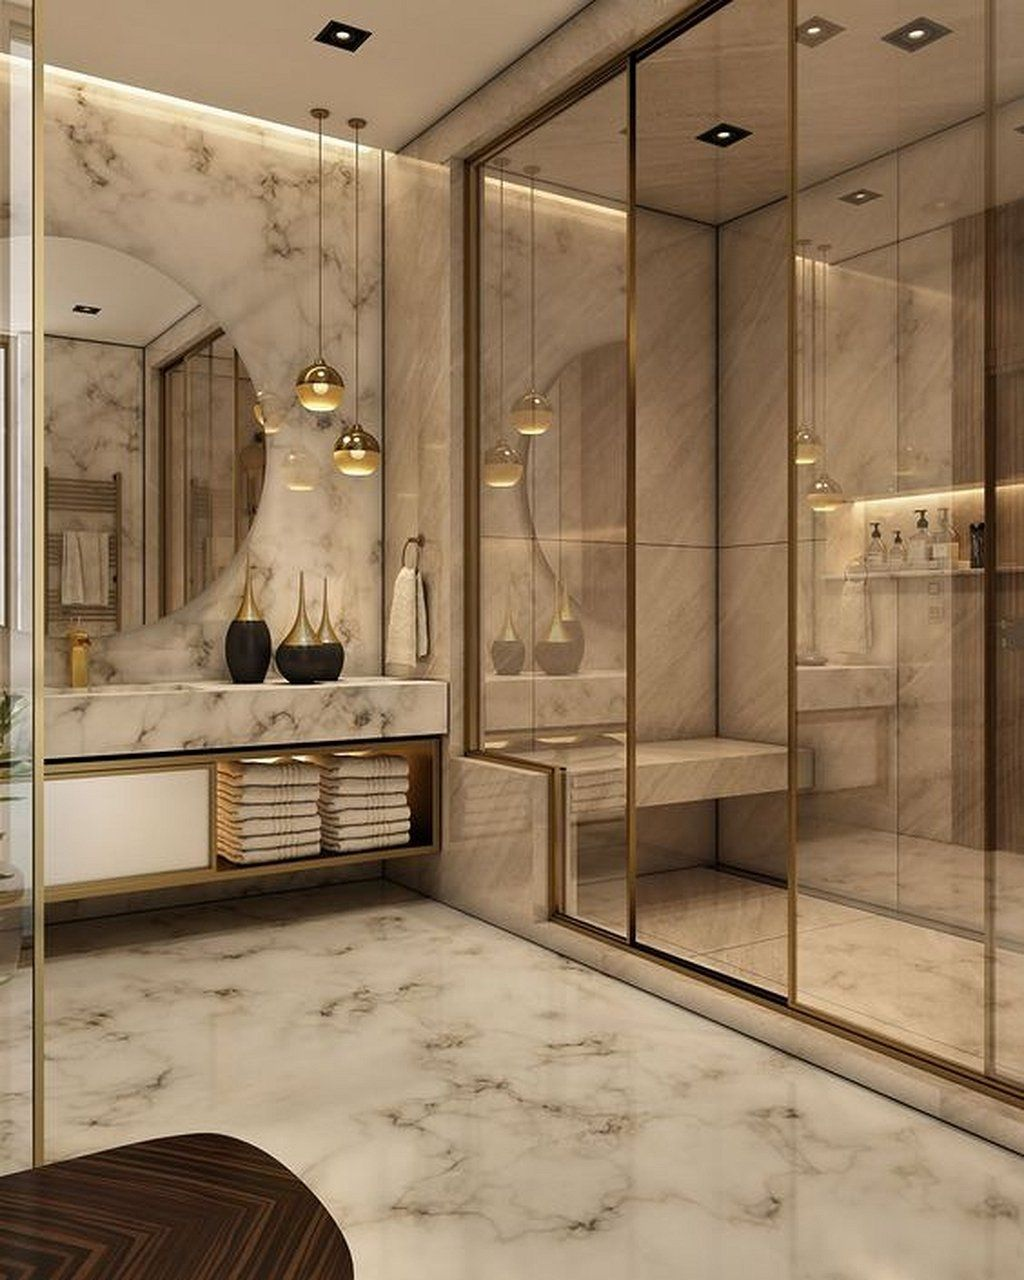 Interior Design In 2020 Bathroom Design Luxury Bathroom Interior Design Modern Bathroom Design